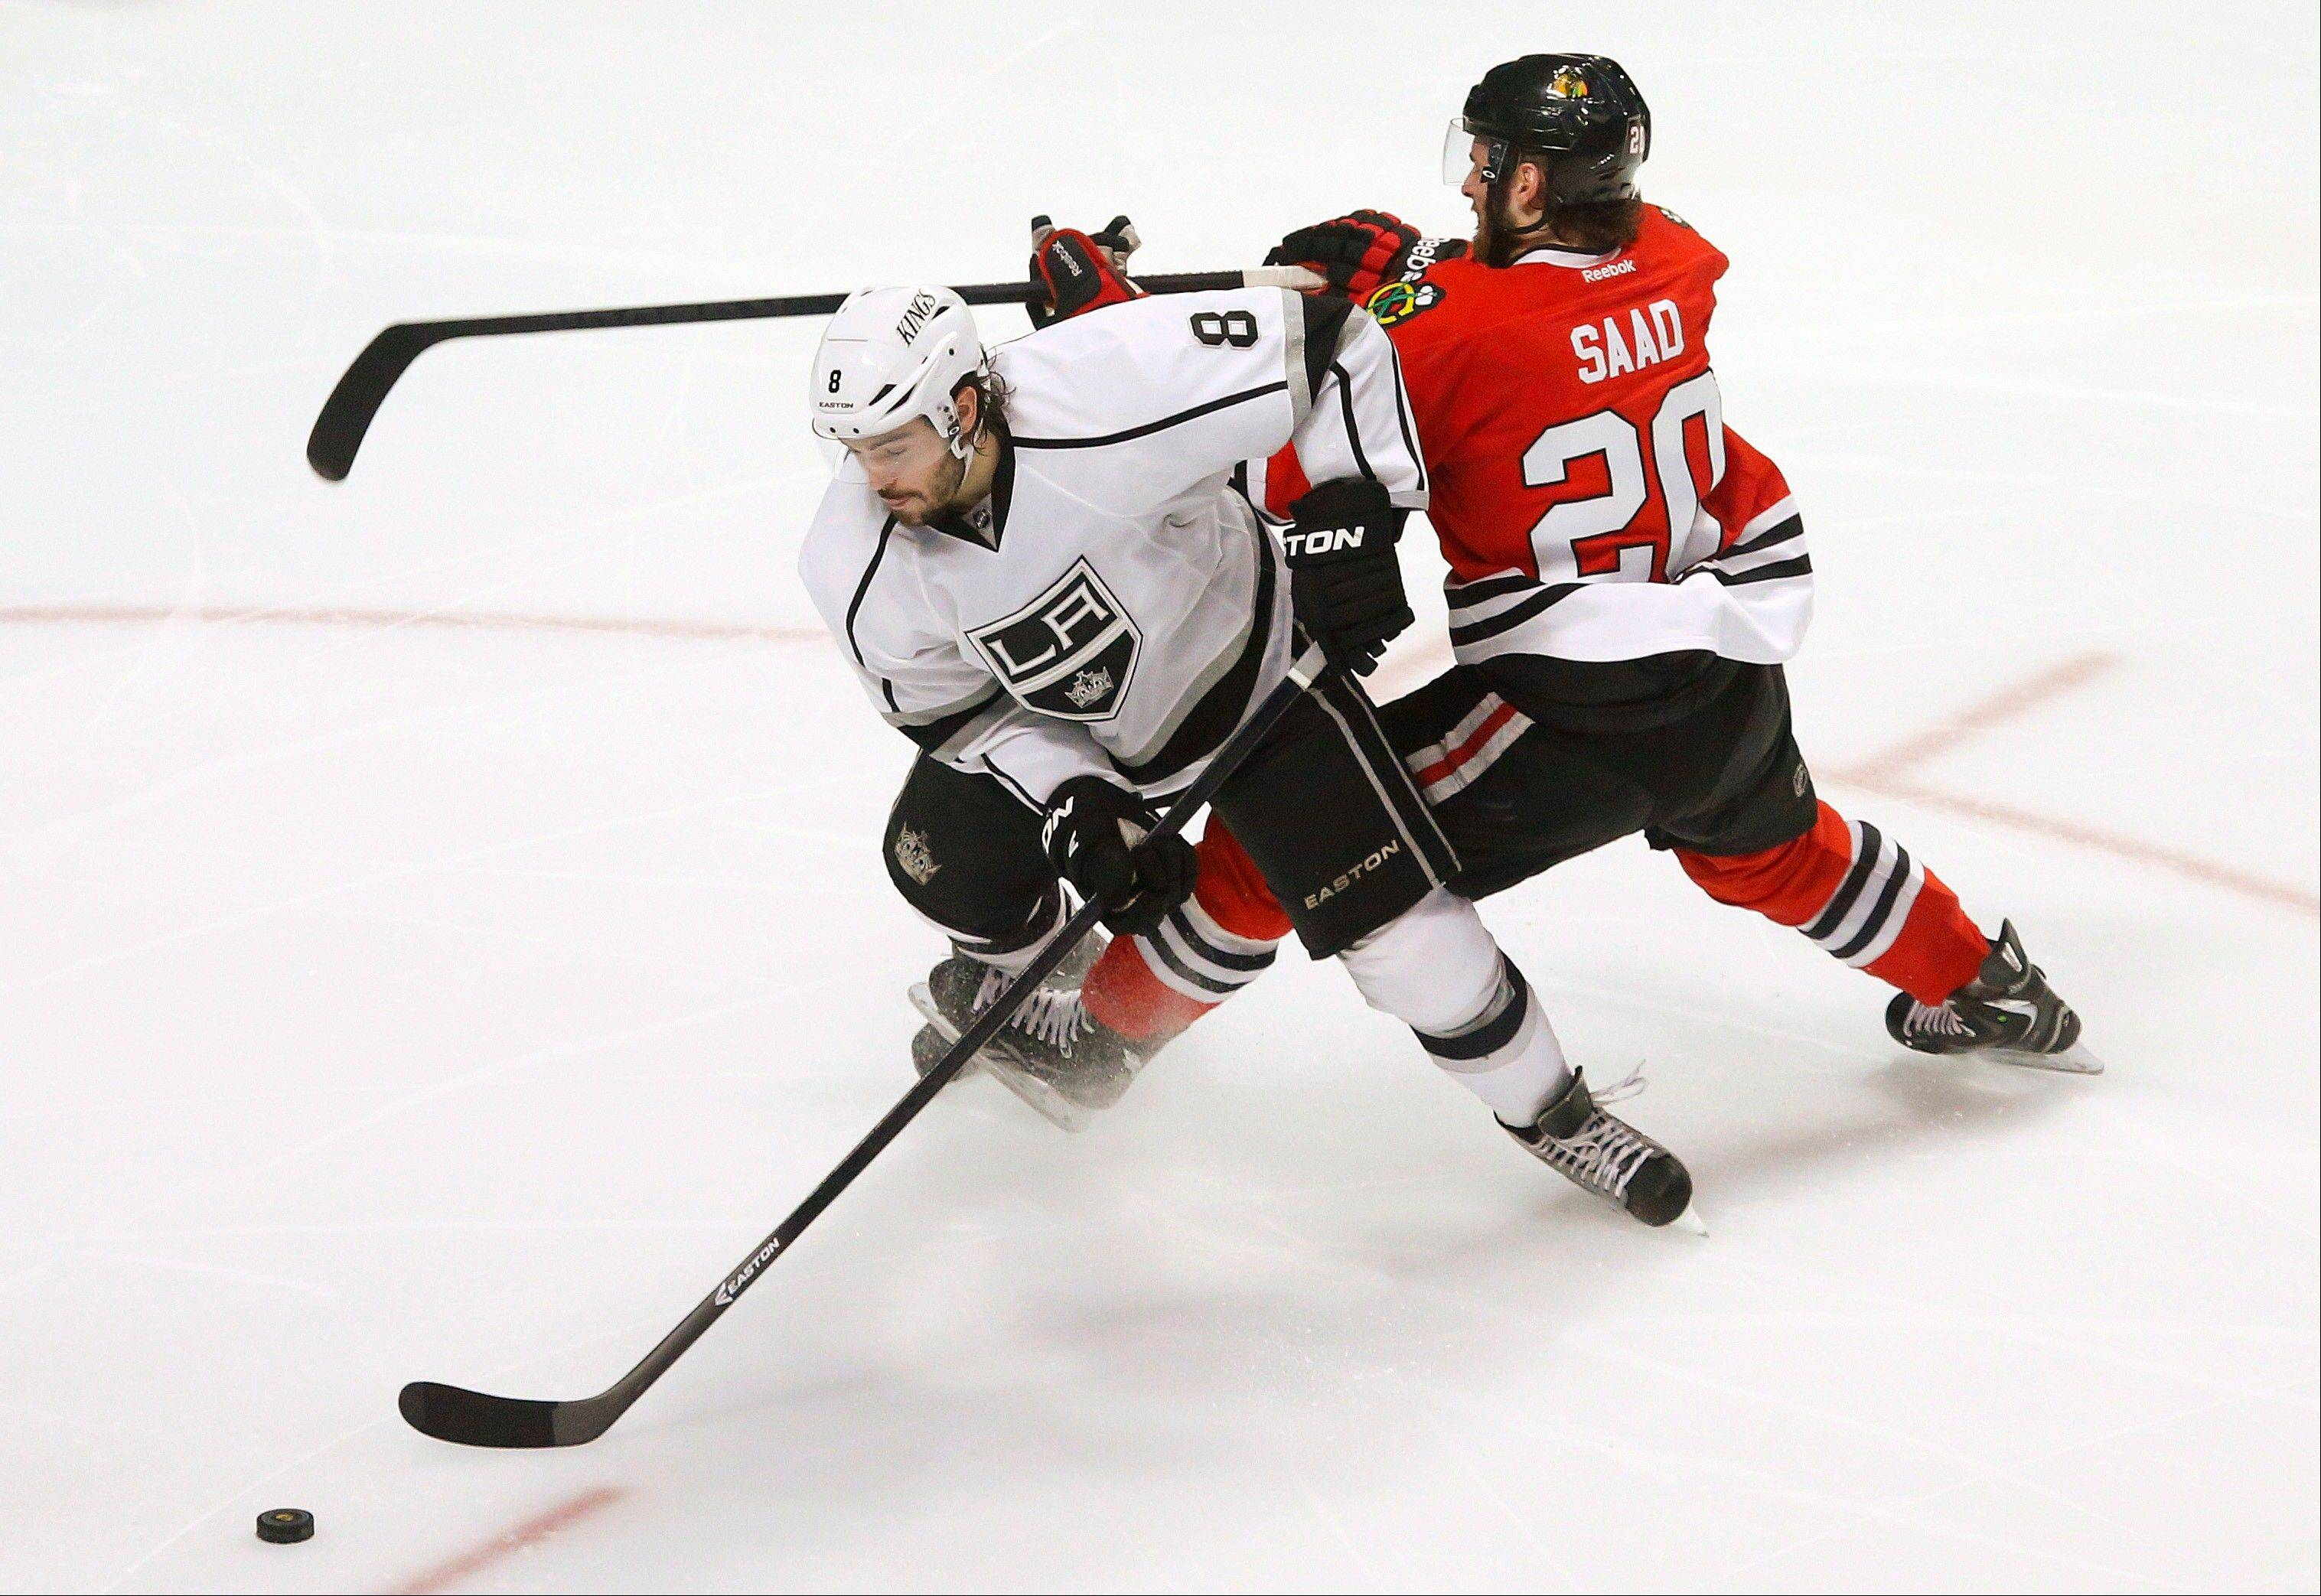 Los Angeles Kings defenseman Drew Doughty (8) gets tangled up with Chicago Blackhawks left wing Brandon Saad (20) during the third period in Game 1 of the NHL hockey Stanley Cup Western Conference finals Saturday, June 1, 2013, in Chicago.